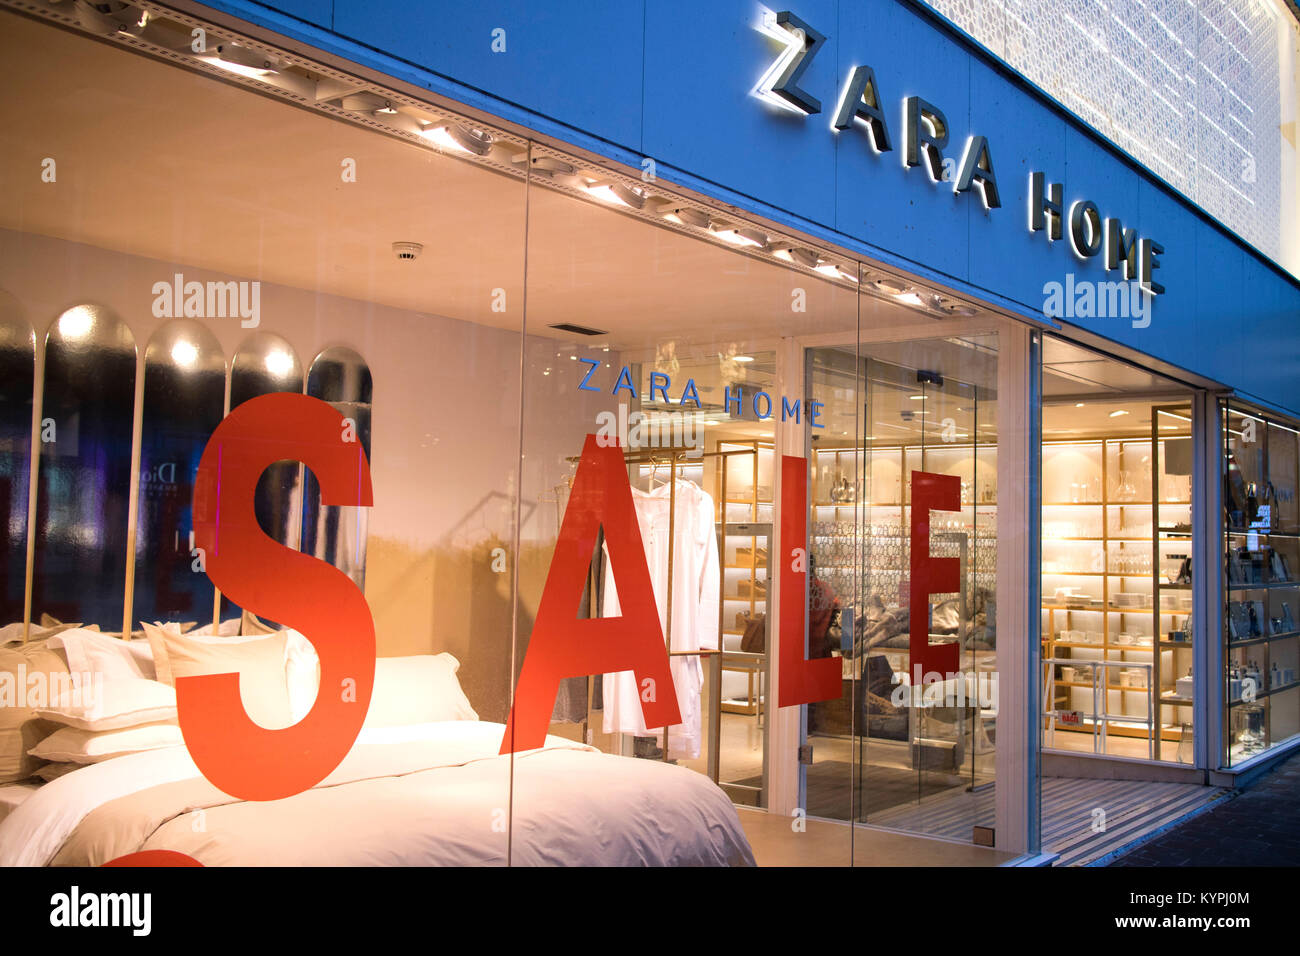 39 zara home 39 stock photos 39 zara home 39 stock images alamy. Black Bedroom Furniture Sets. Home Design Ideas